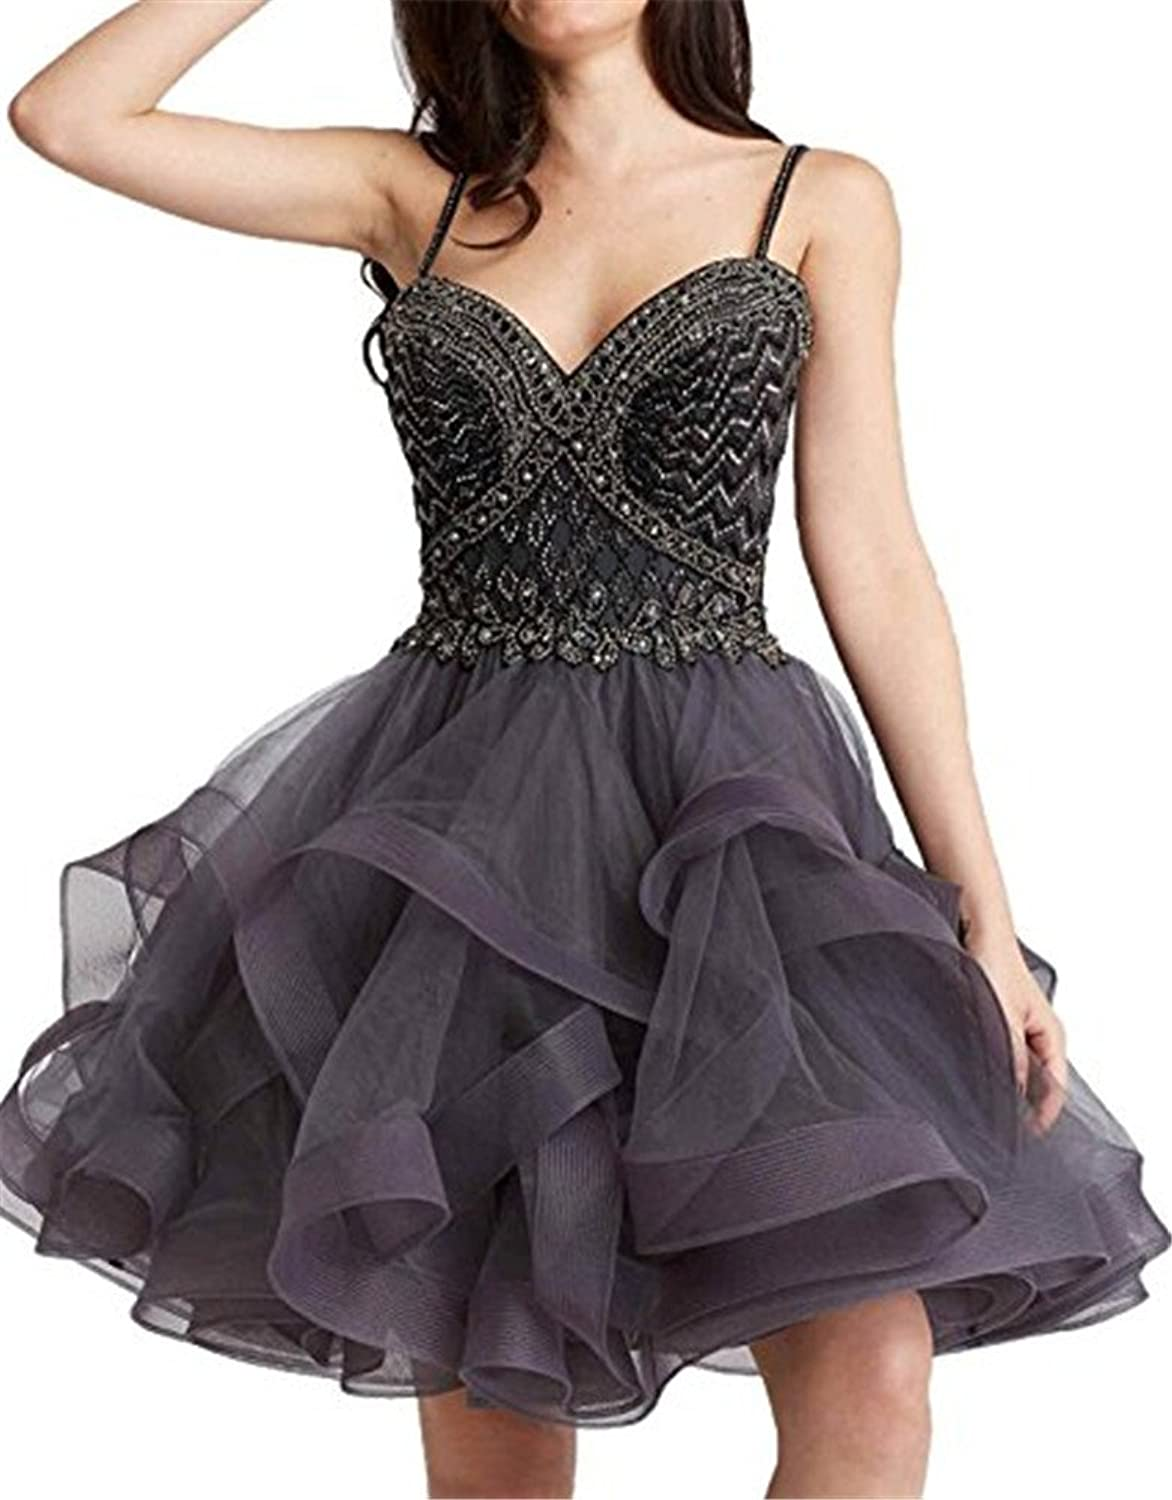 Chenghouse Short Prom Dresses Spaghetti Straps Homecoming Party Gowns